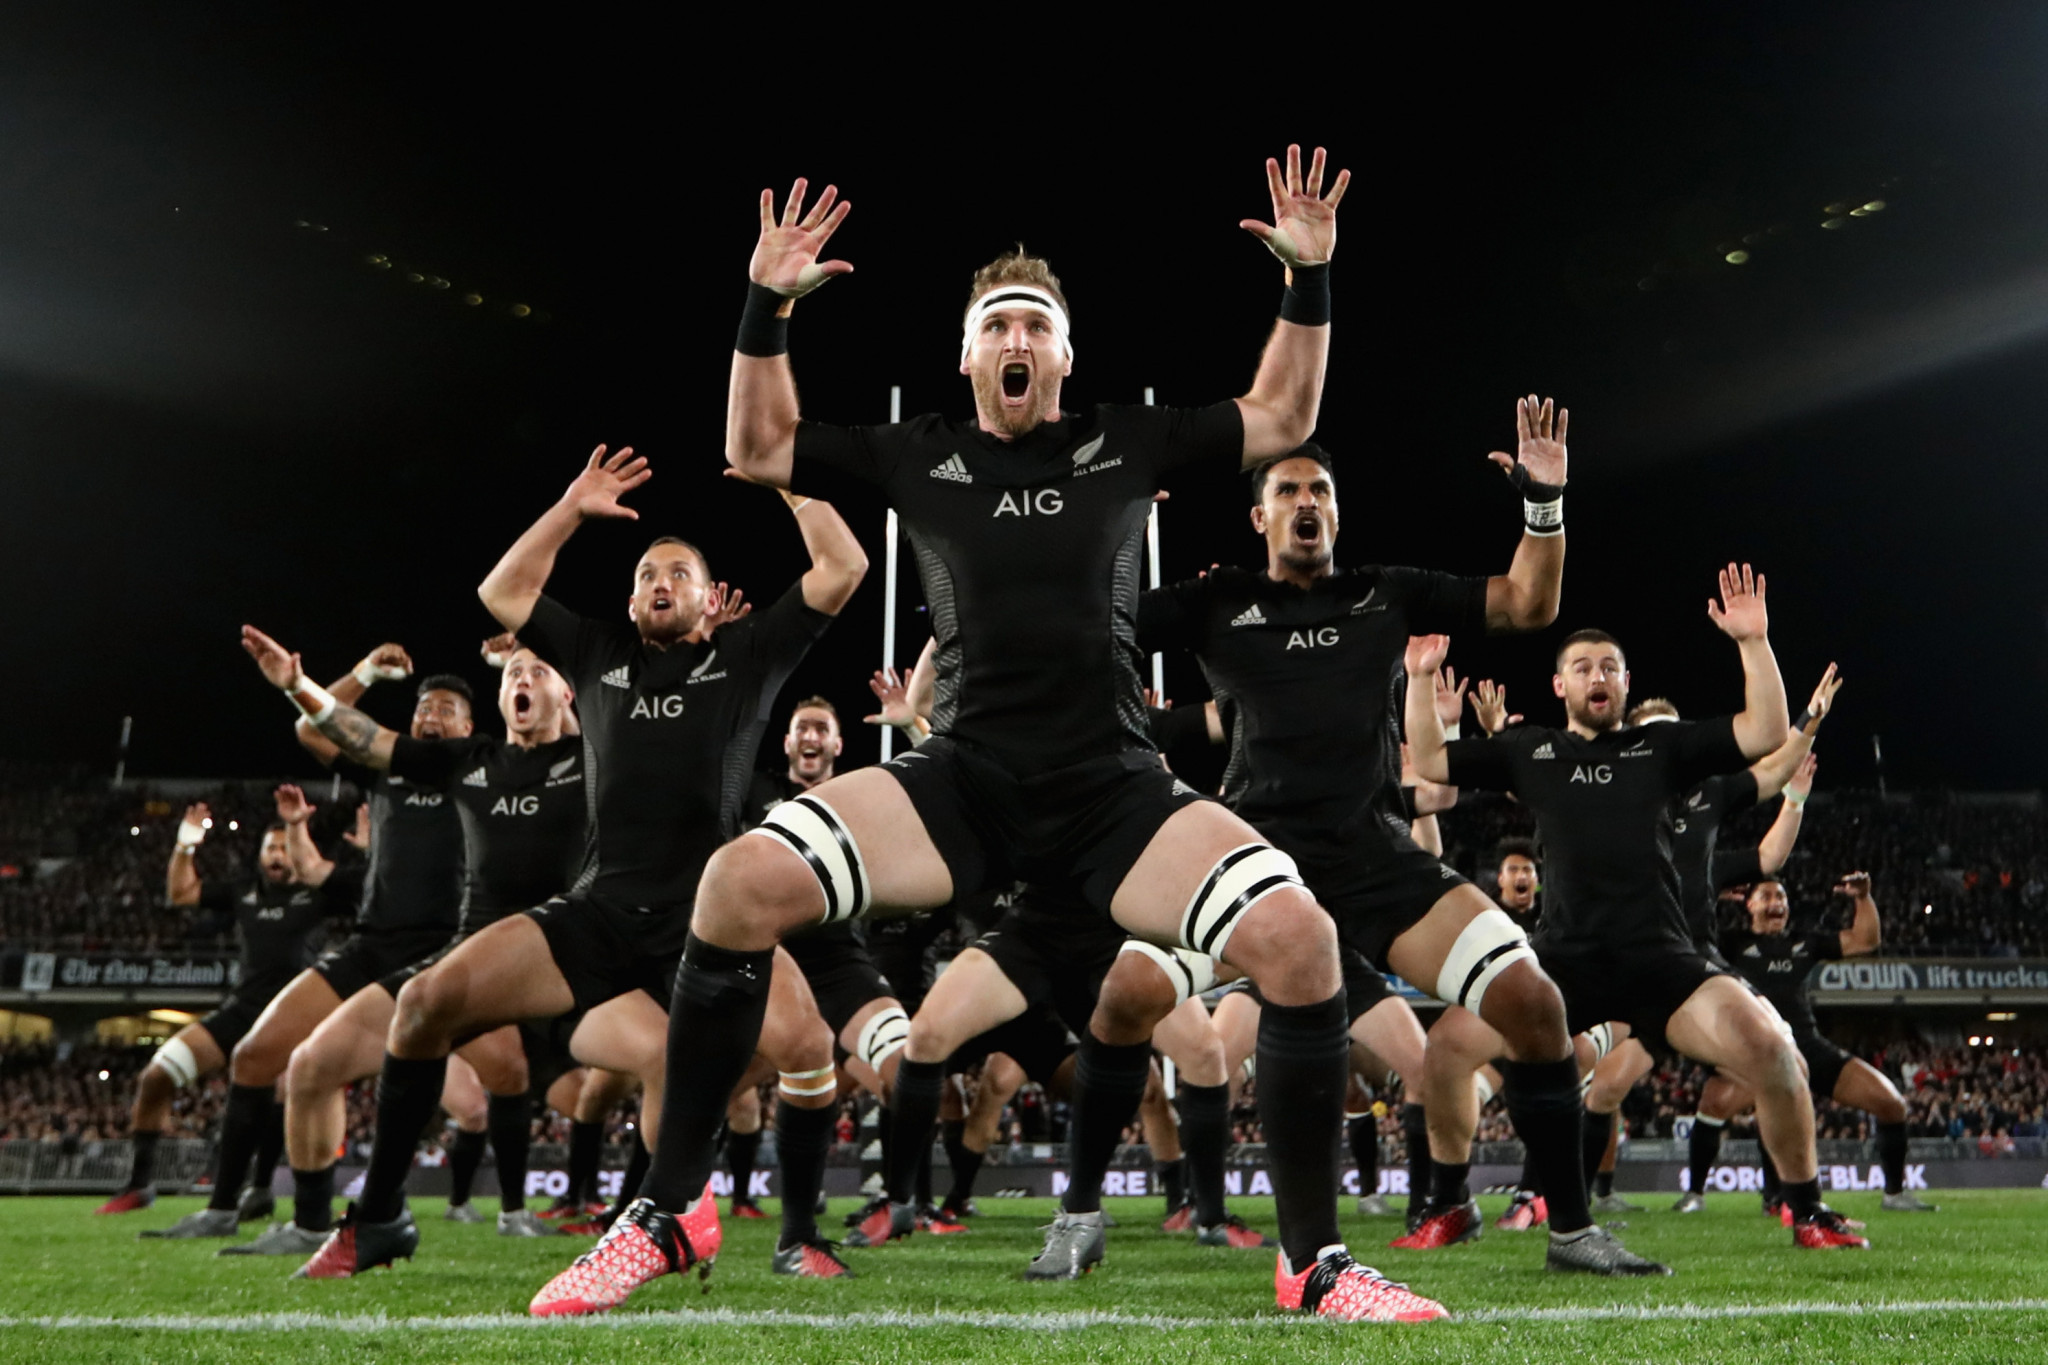 Intimidating and powerful. But can the All Blacks win a third successive World Cup? ©Getty Images